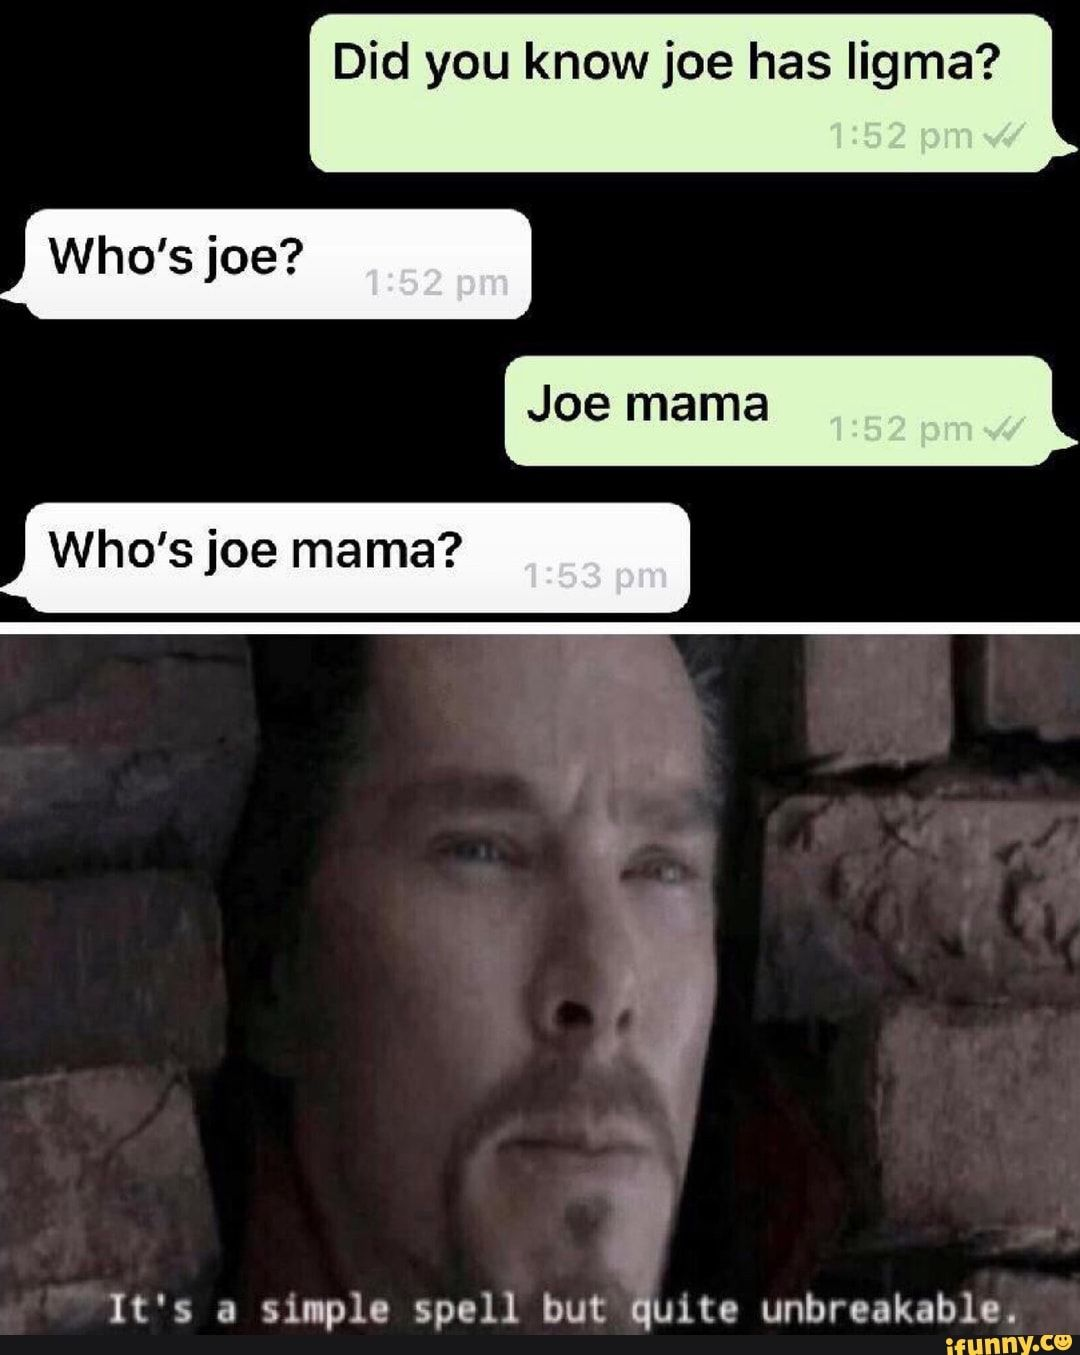 Did You Know Joe Has Iigma Who S Joe Joe Mama Who S Joe Mama It S A Slmple Spell But Quite Unbreakable Ifunny Memes Silly Memes Did You Know I really have no clue who he is, and i'm wondering if any of you knew who joe was. ifunny memes silly memes